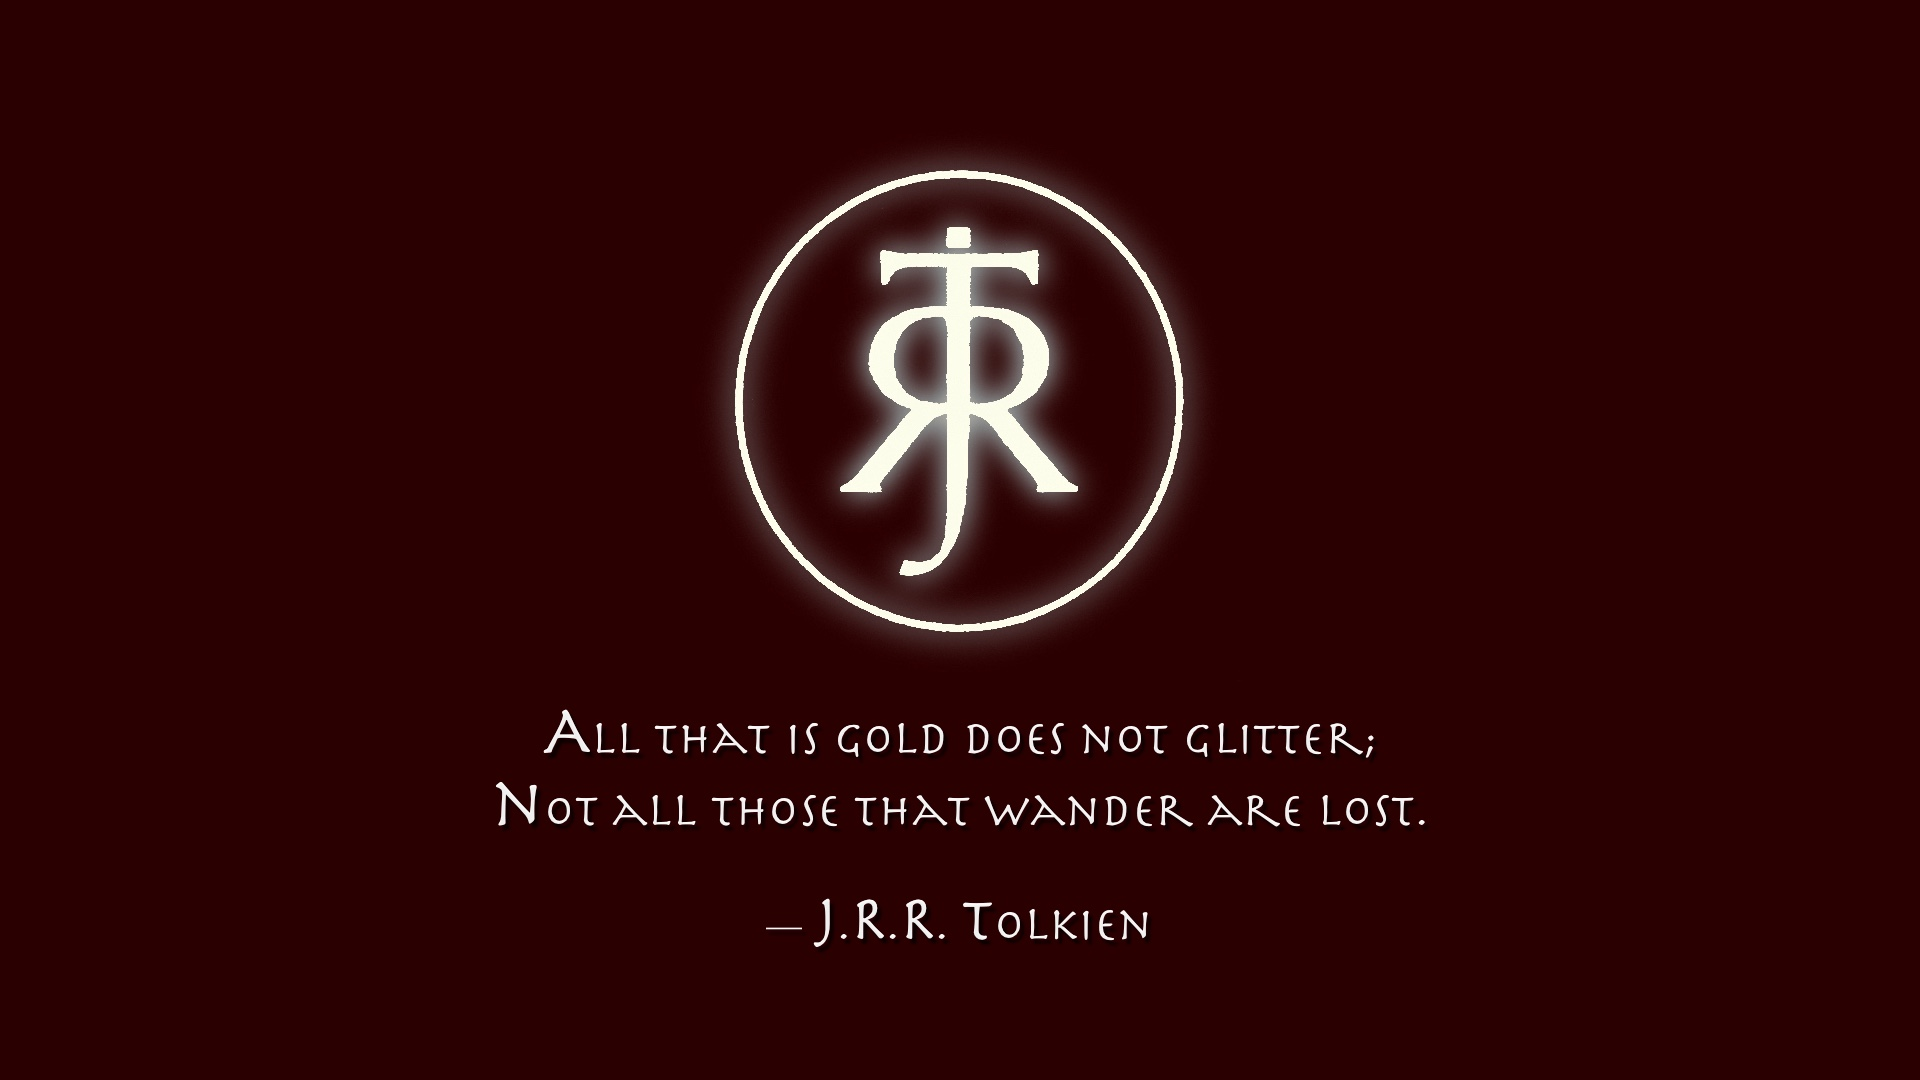 Tolkien Quotes J.r.r.tolkien Quote Full Hd Wallpaper And Background Image